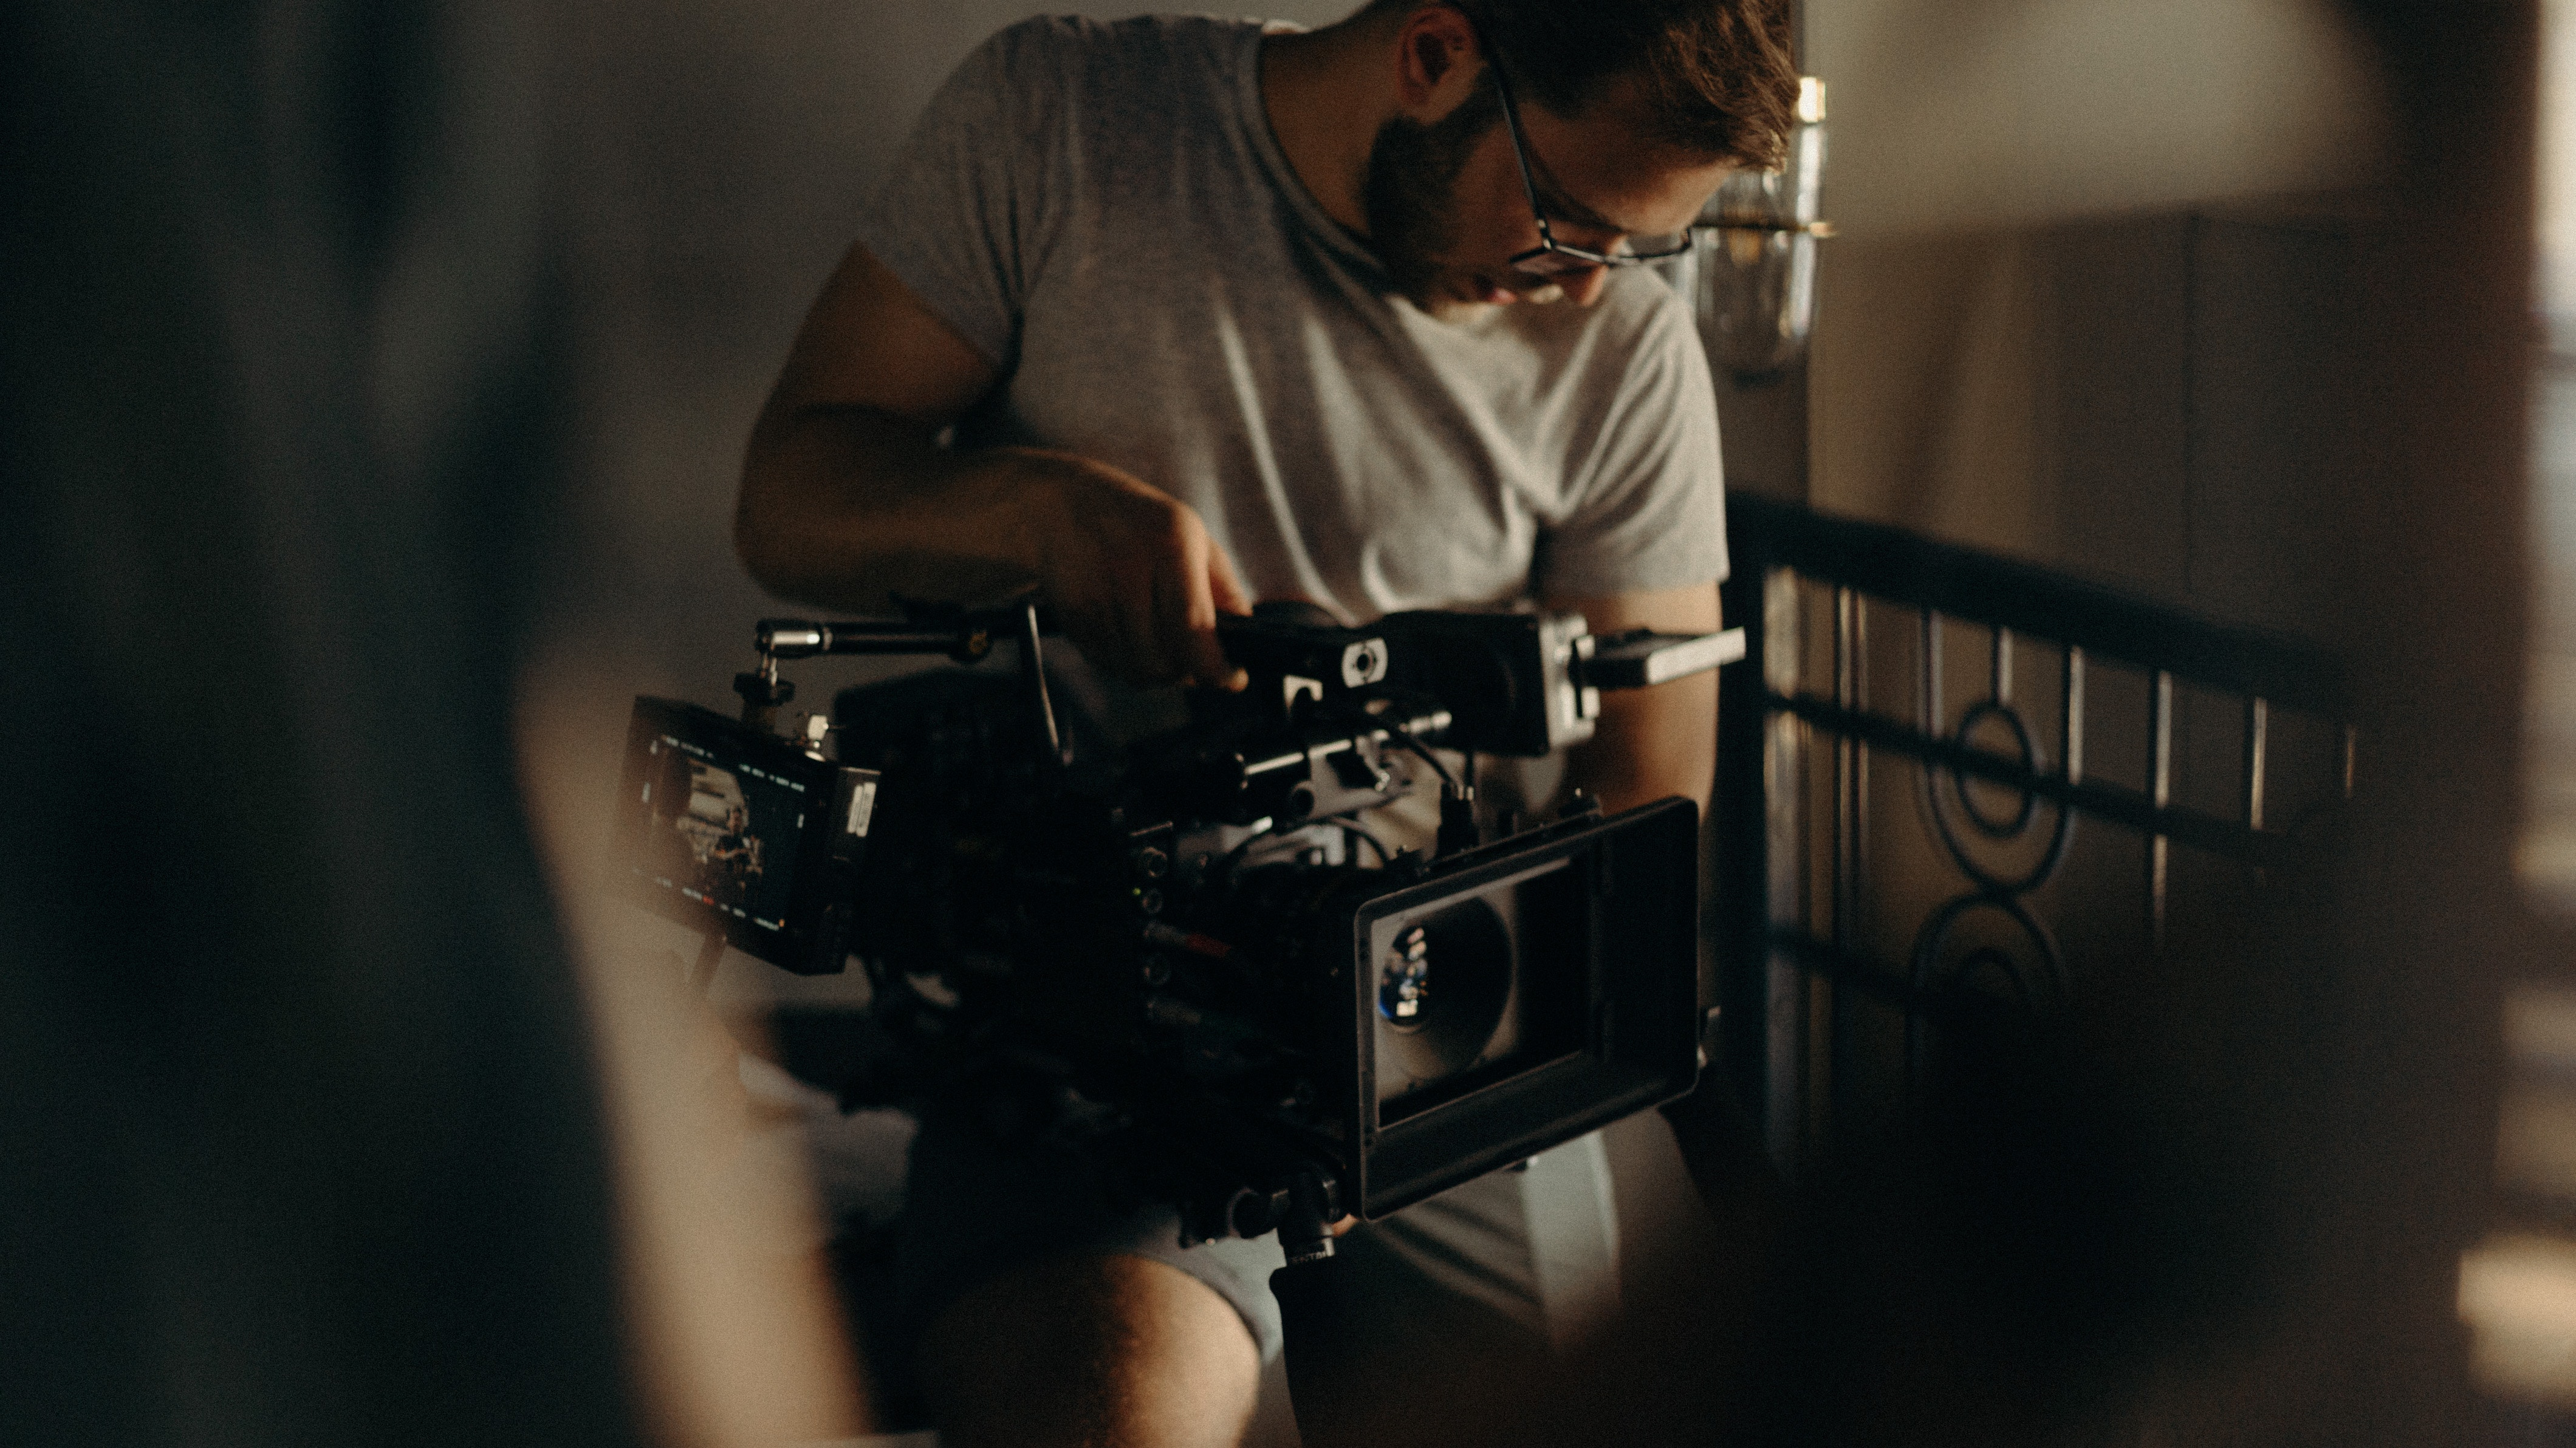 video production image 3